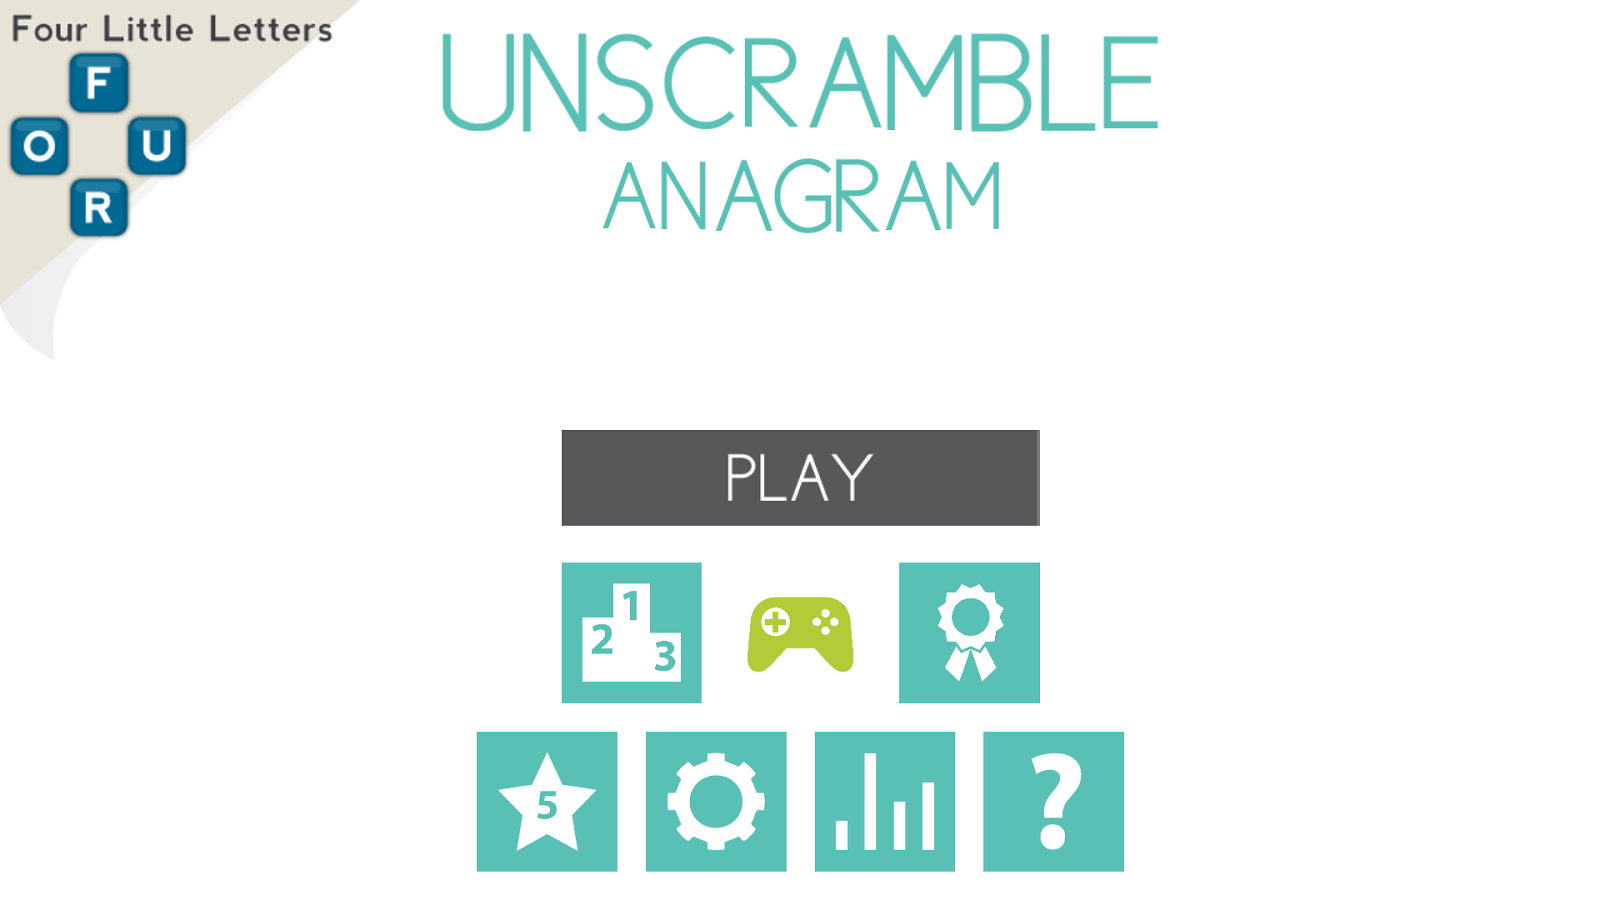 Unscramble Anagram Twist It Android Apps on Google Play